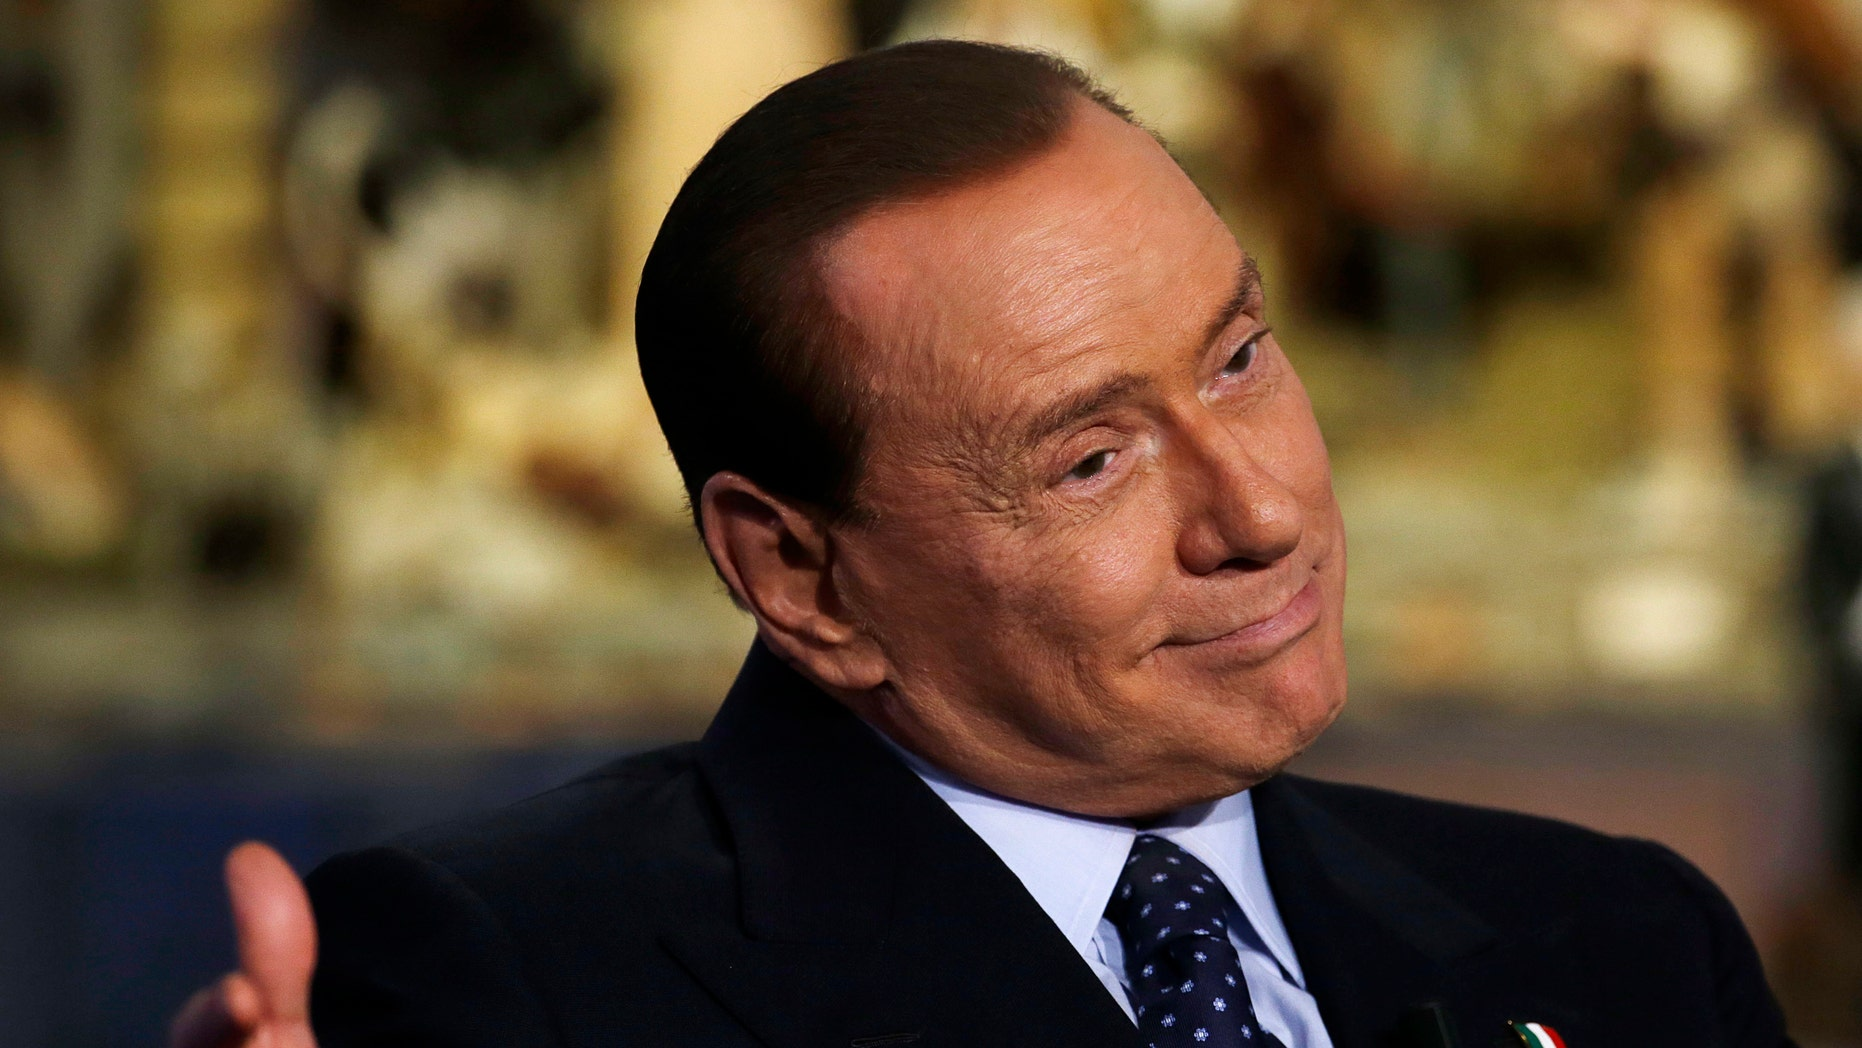 """Dec. 18, 2012: Former Italian Premier and People of Freedom party Leader Silvio Berlusconi  gestures while attending the recording of RAI (Italian State Television) TV talk show """"Porta a Porta""""(Door to Door) hosted by journalist Bruno Vespa, in Rome."""